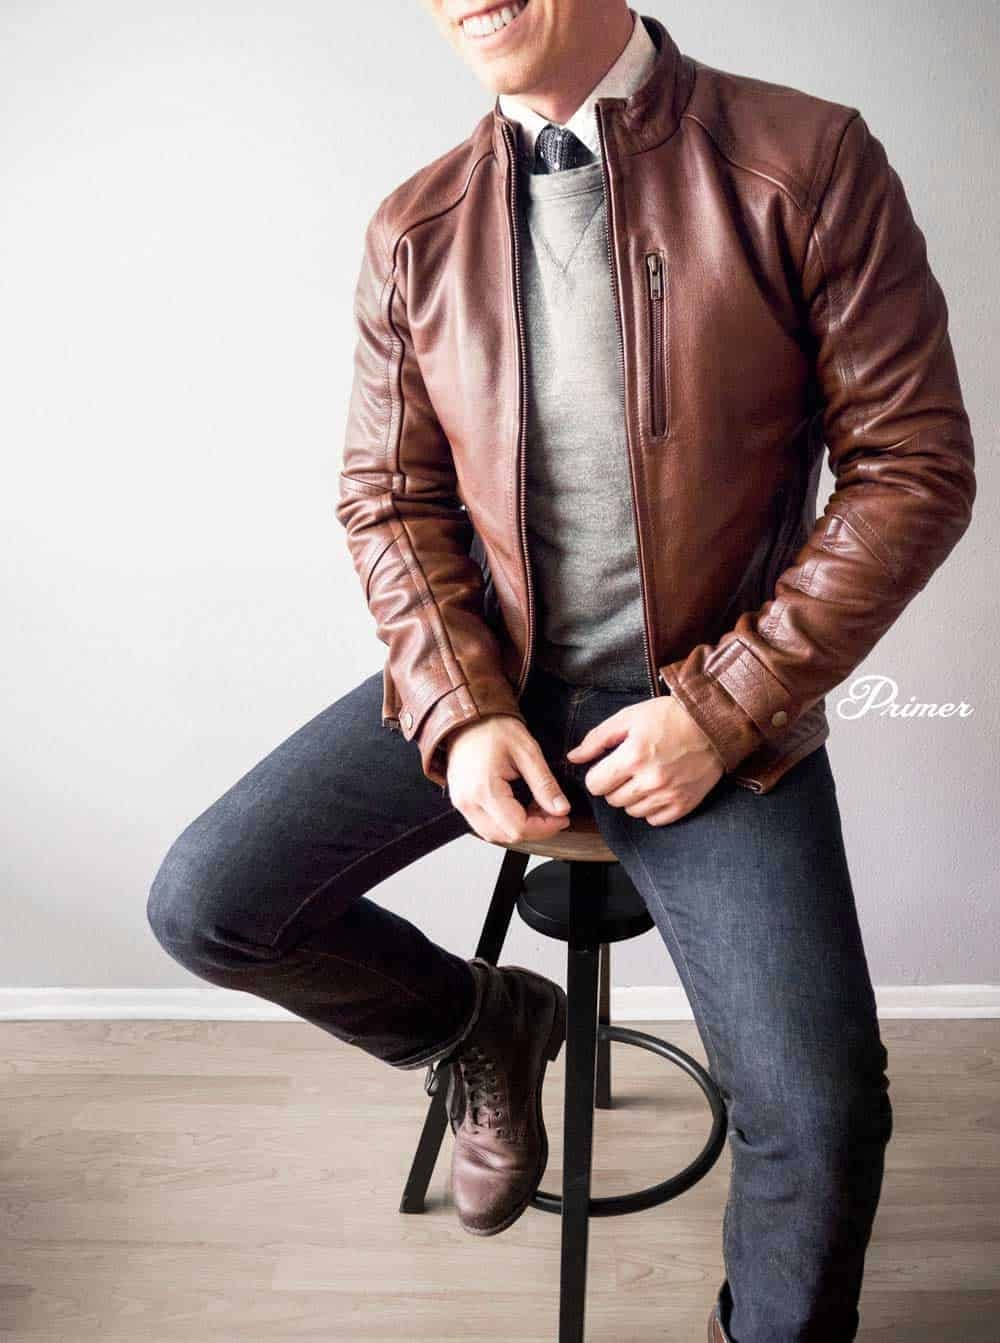 man wearing a brown leather jacket and blue denim jeans